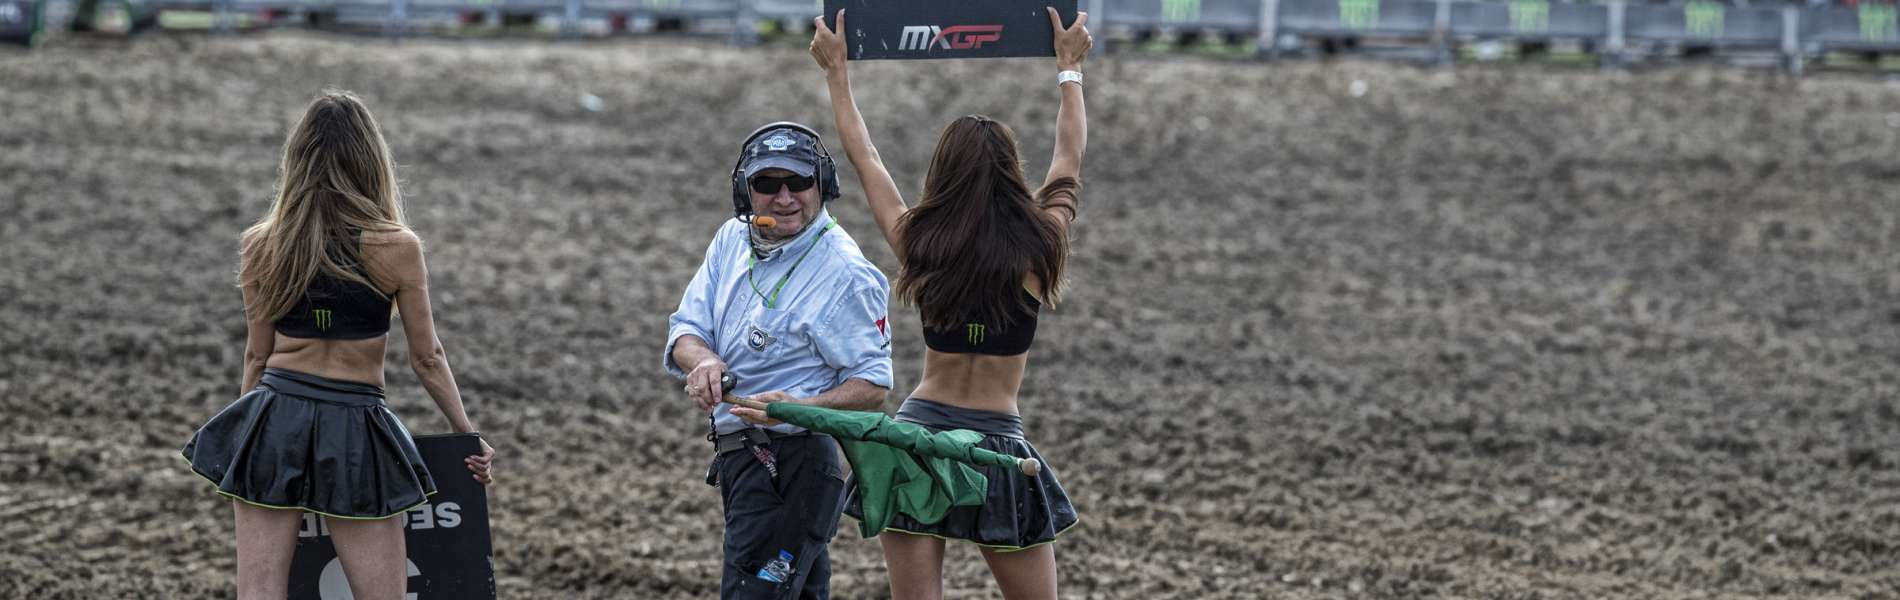 Monster Energy girls from the 2018 Grand Prix of Indonesia